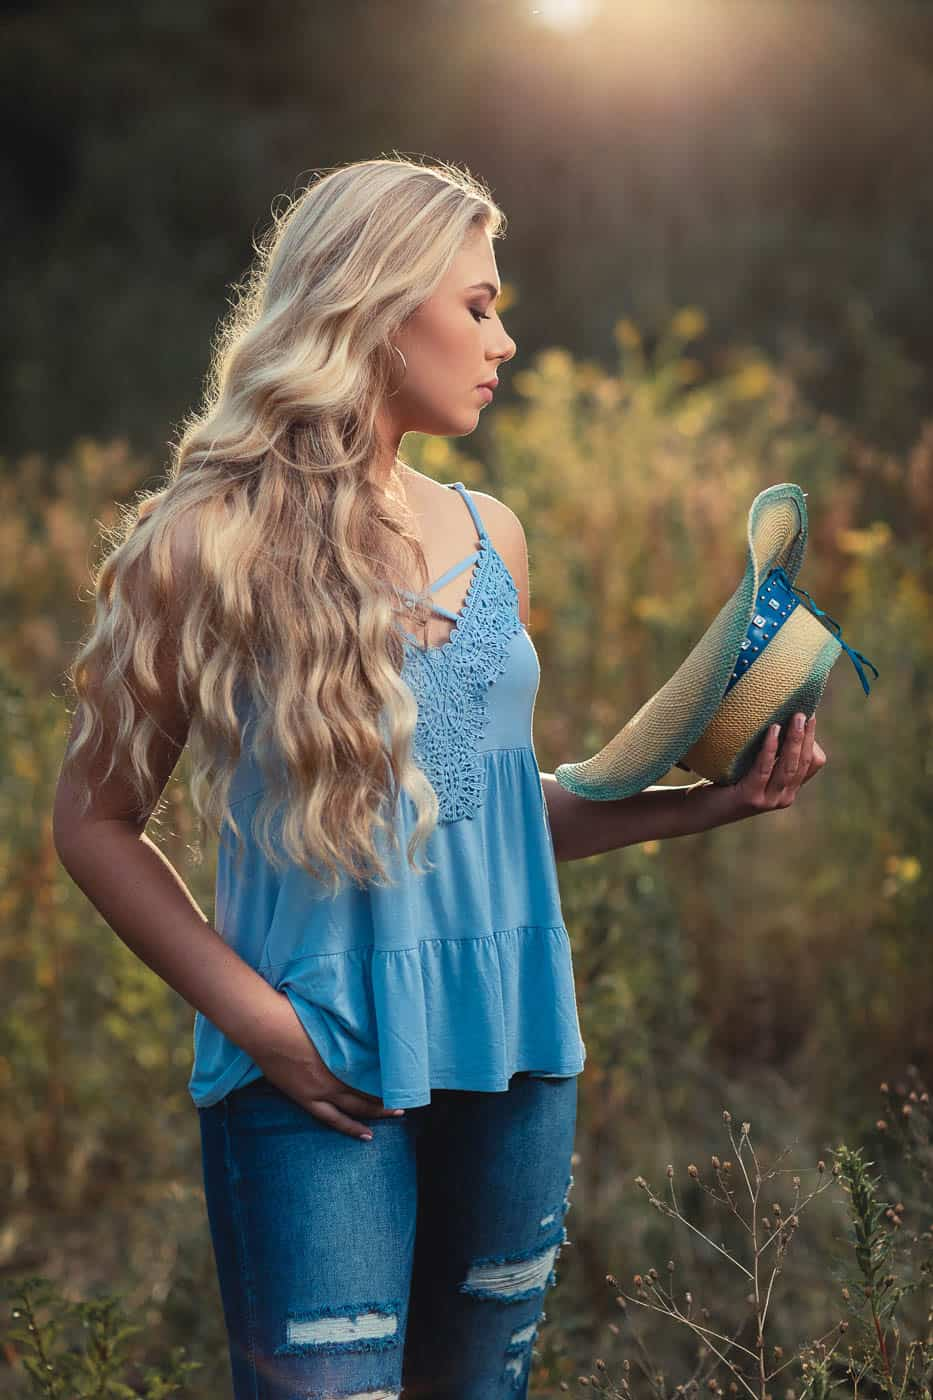 Country chic senior portrait outfit ideas